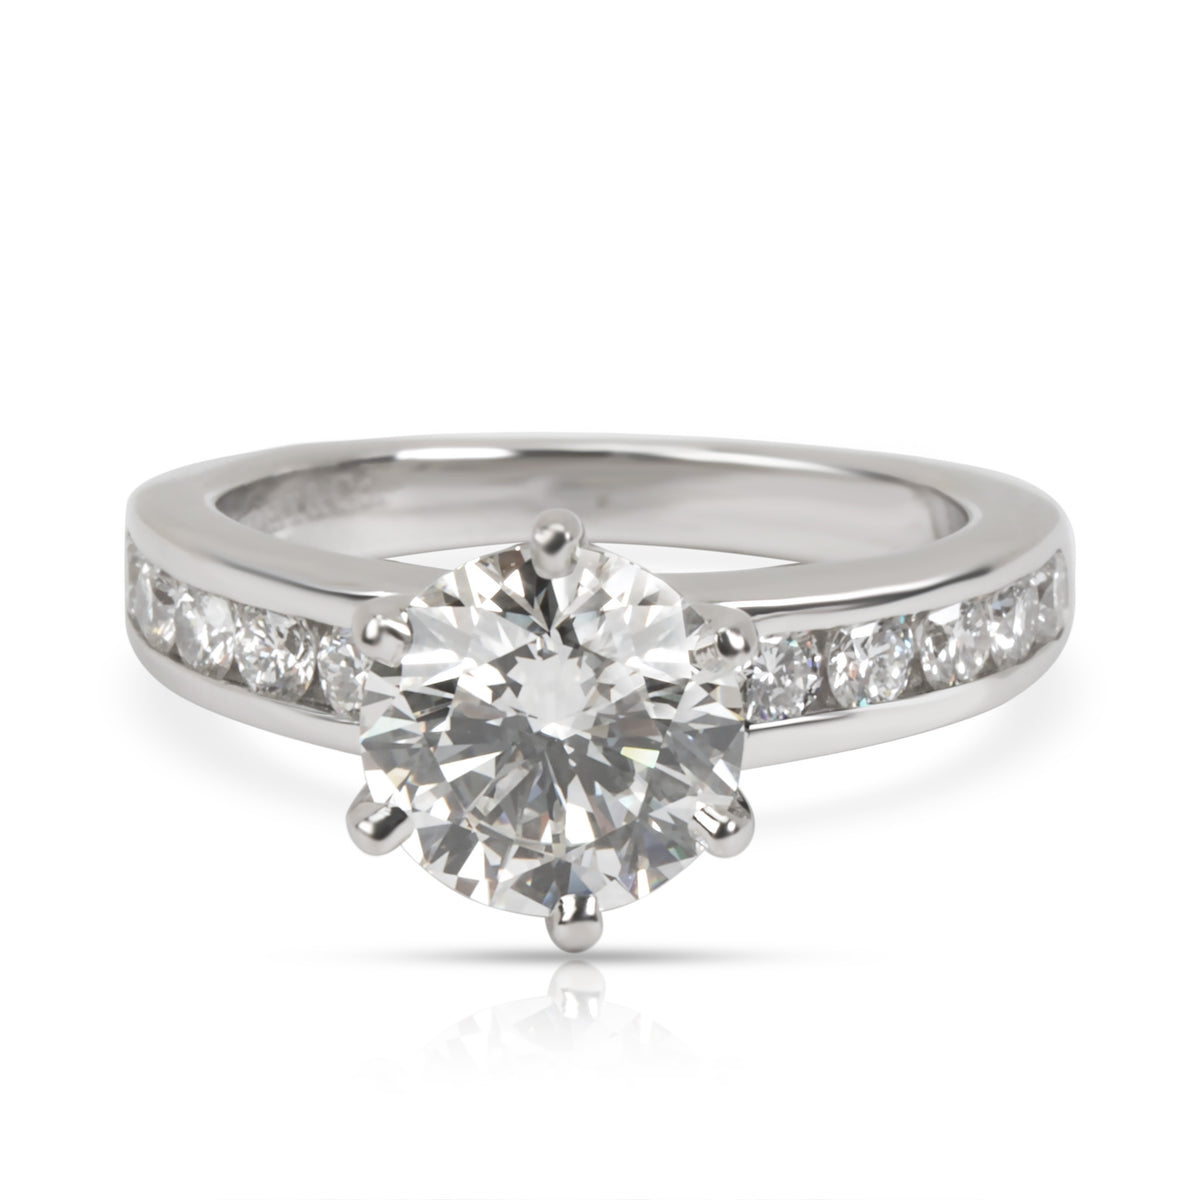 Tiffany & Co. Channel Diamond Engagement Ring in  Platinum I VS2 1.68 CTW